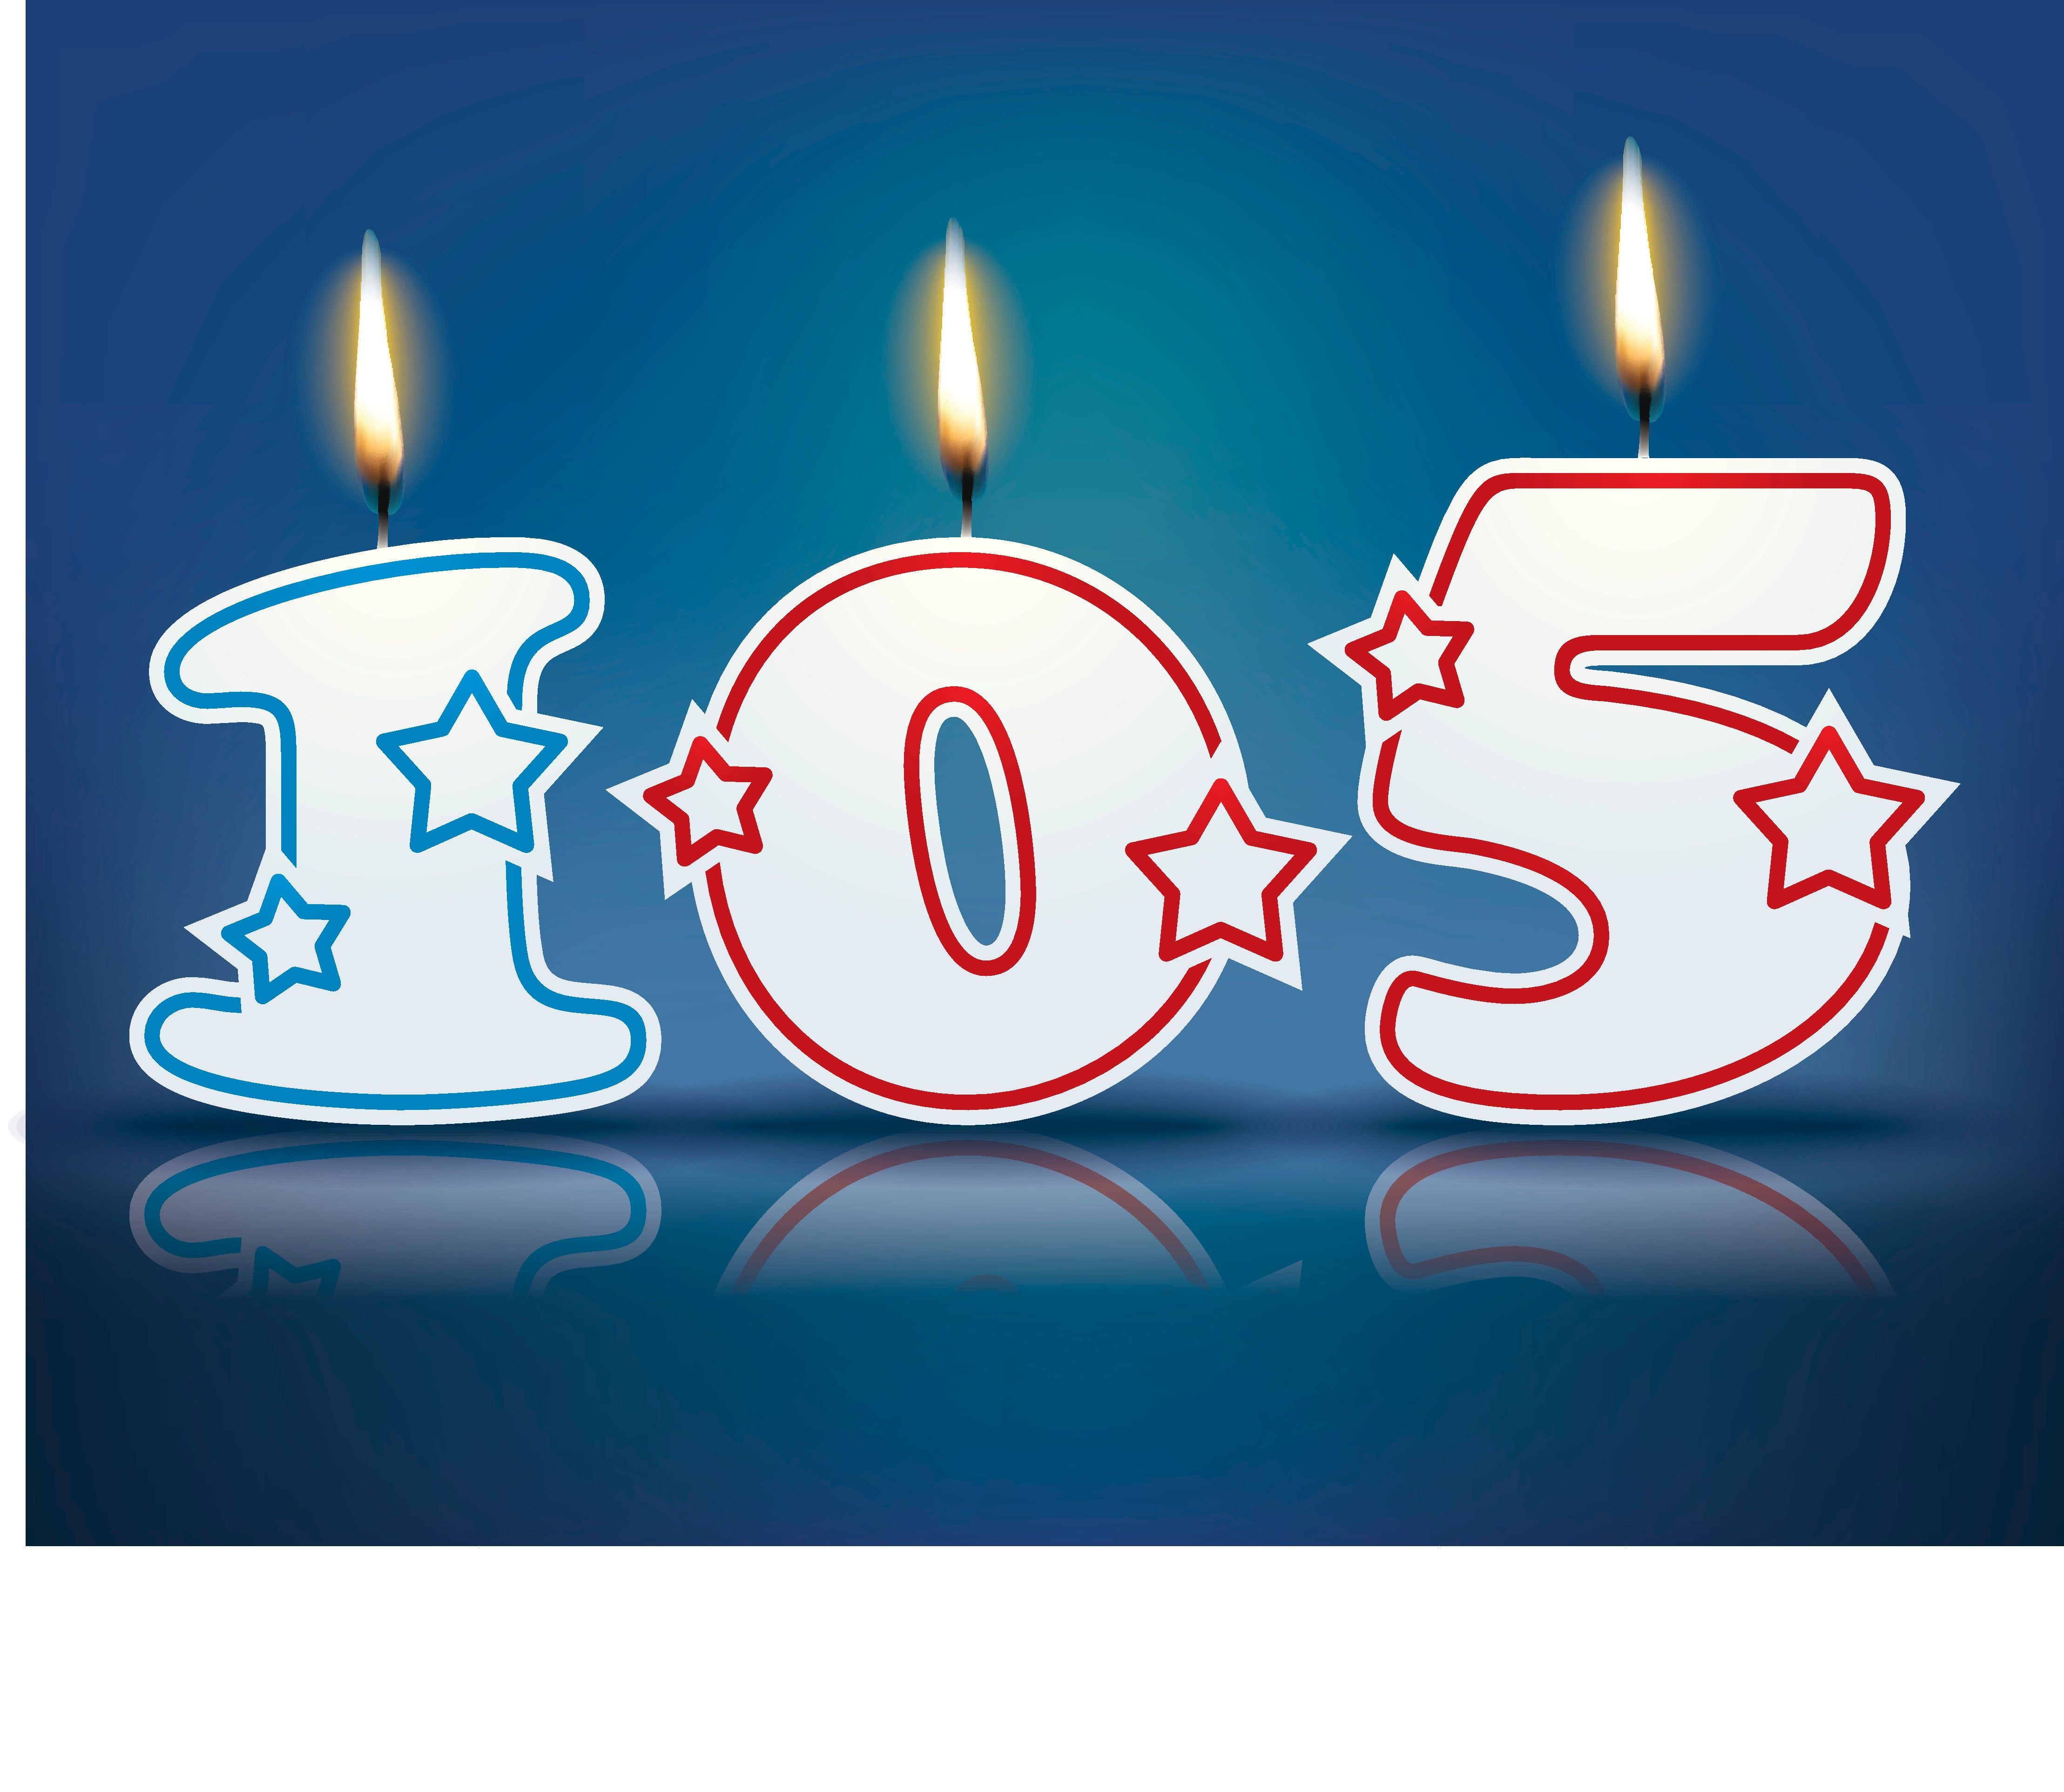 Birthday candle number 105 with flame - eps 10 vector illustration